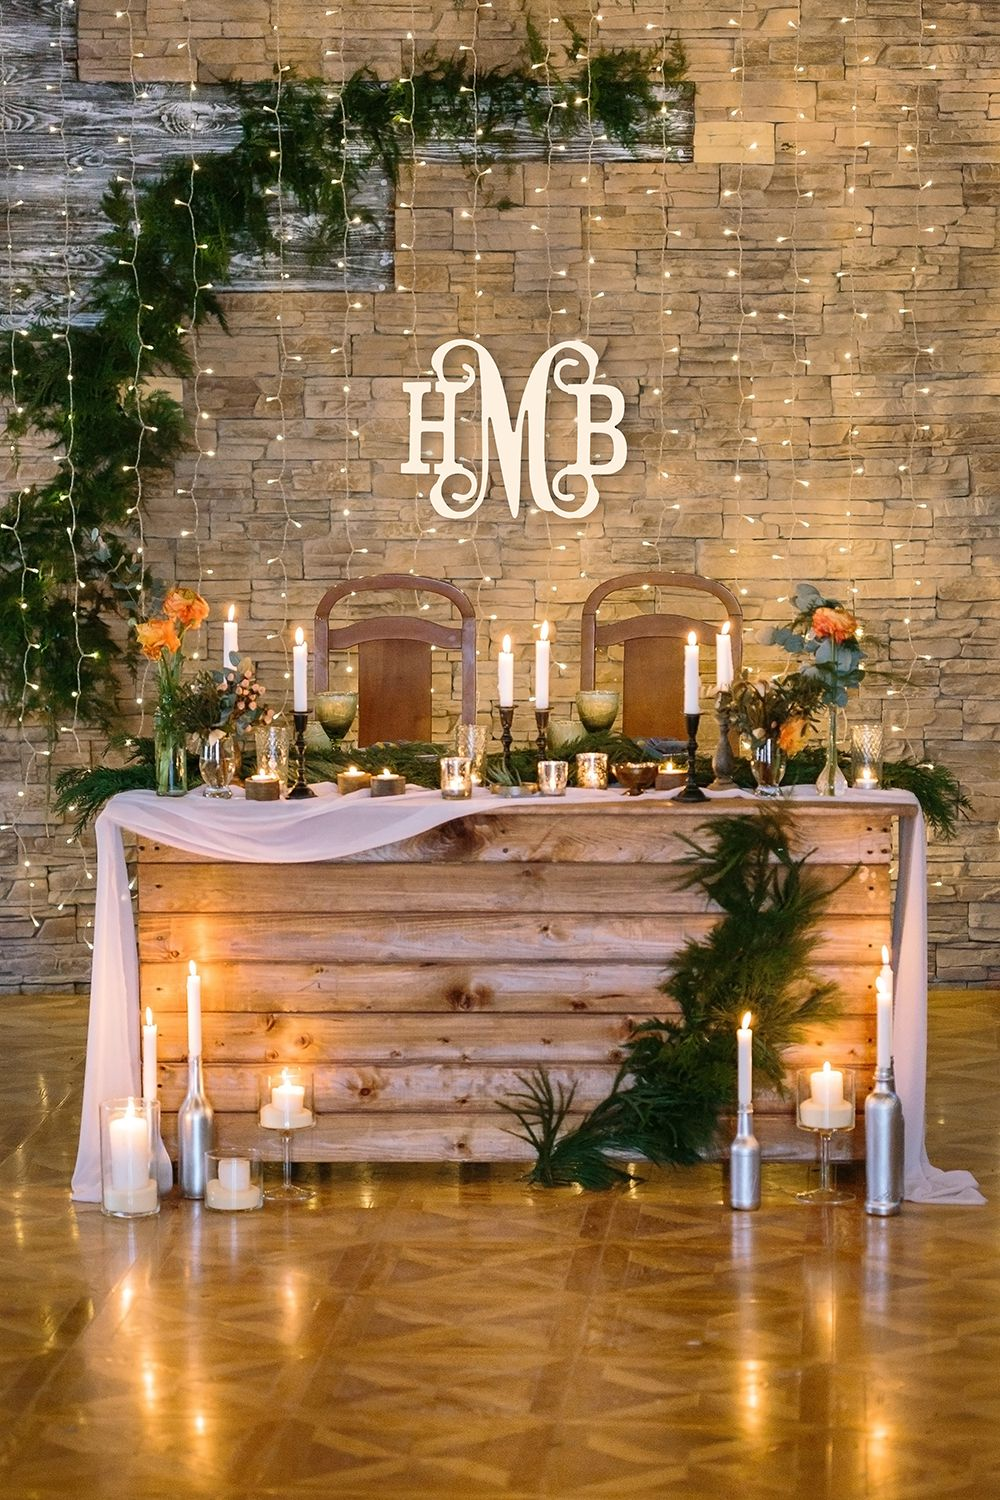 Personalized Large Three Initials Classic Vine Wood Monogram ~ 18 in. high